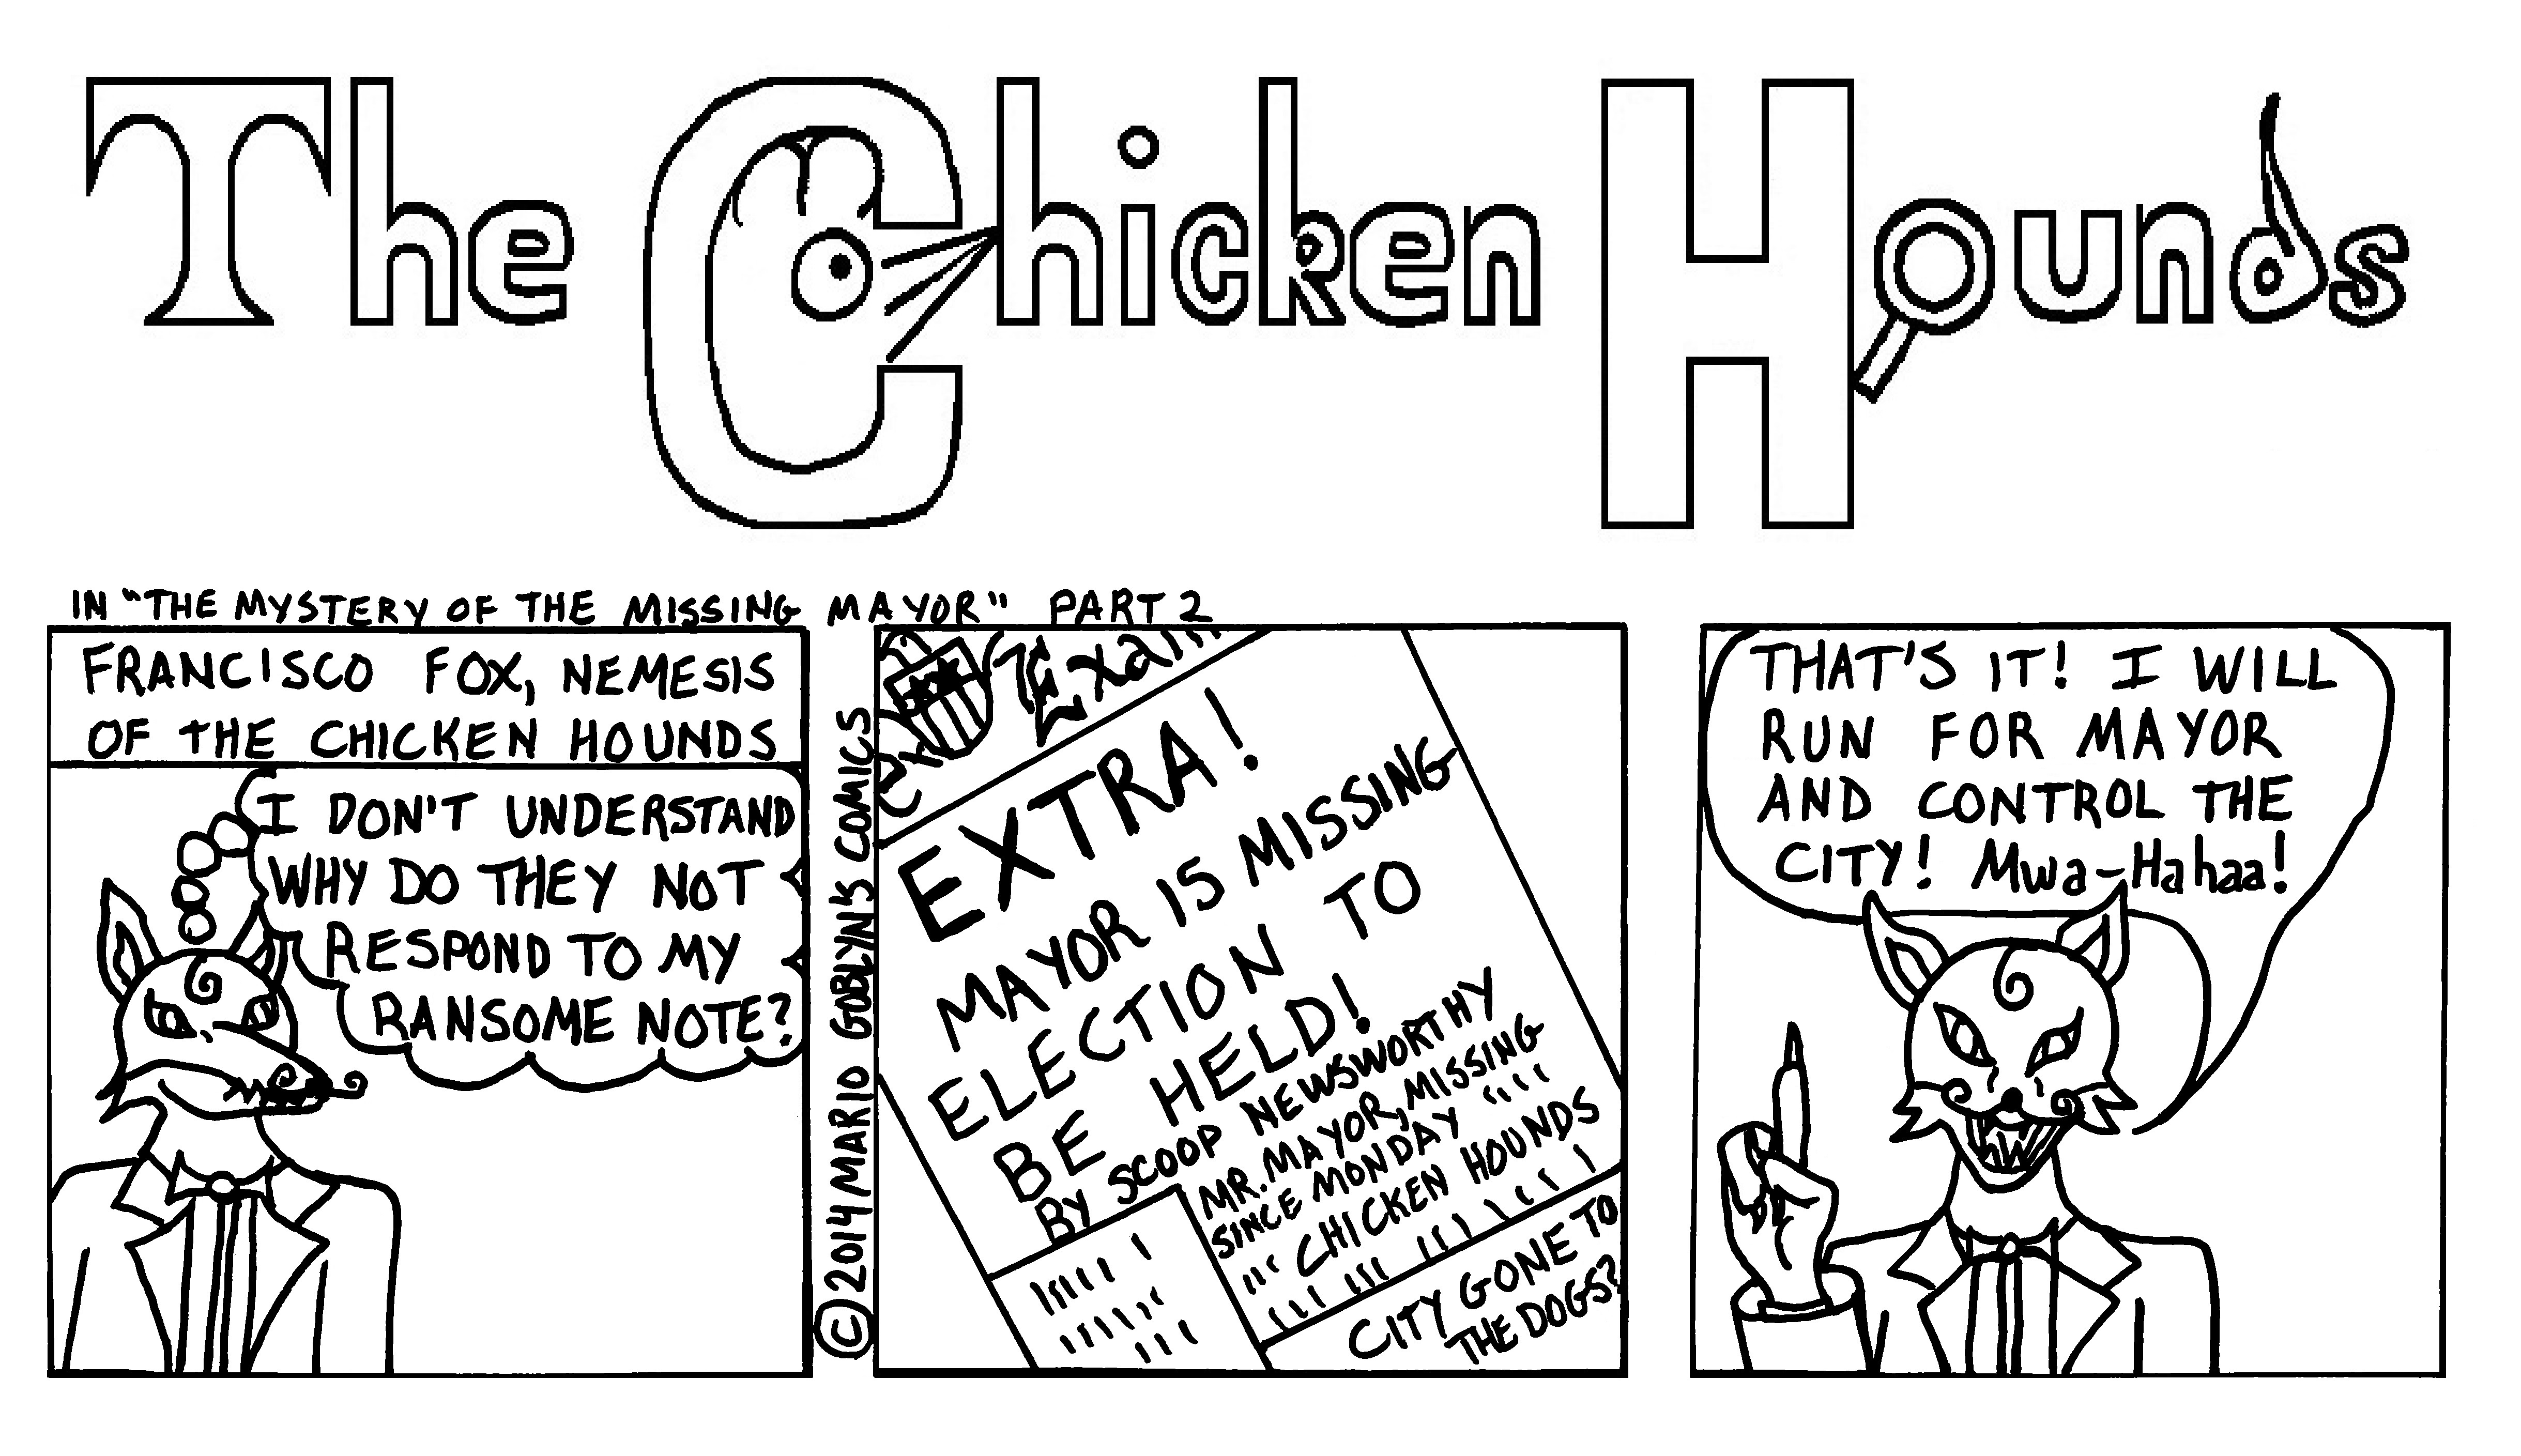 "The Chicken Hounds, San Francisco's Greatest Detectives, in ""The Mystery of the Missing Mayor"" Part 2."